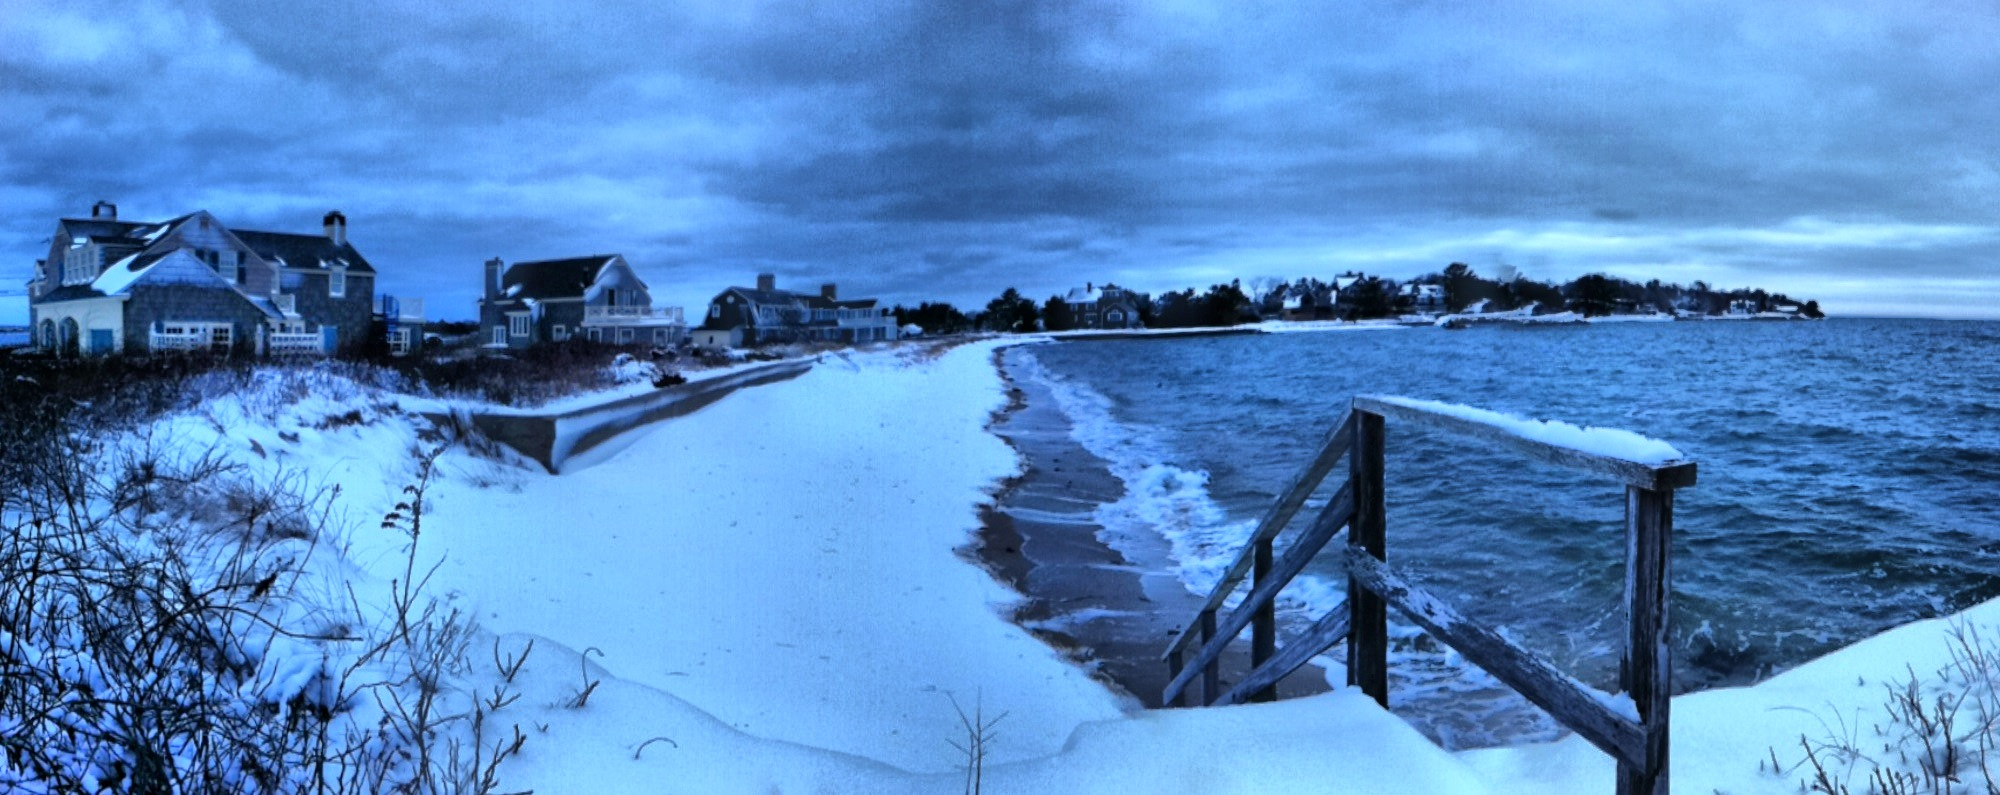 Snow on the beach near Penzance in Woods Hole MA